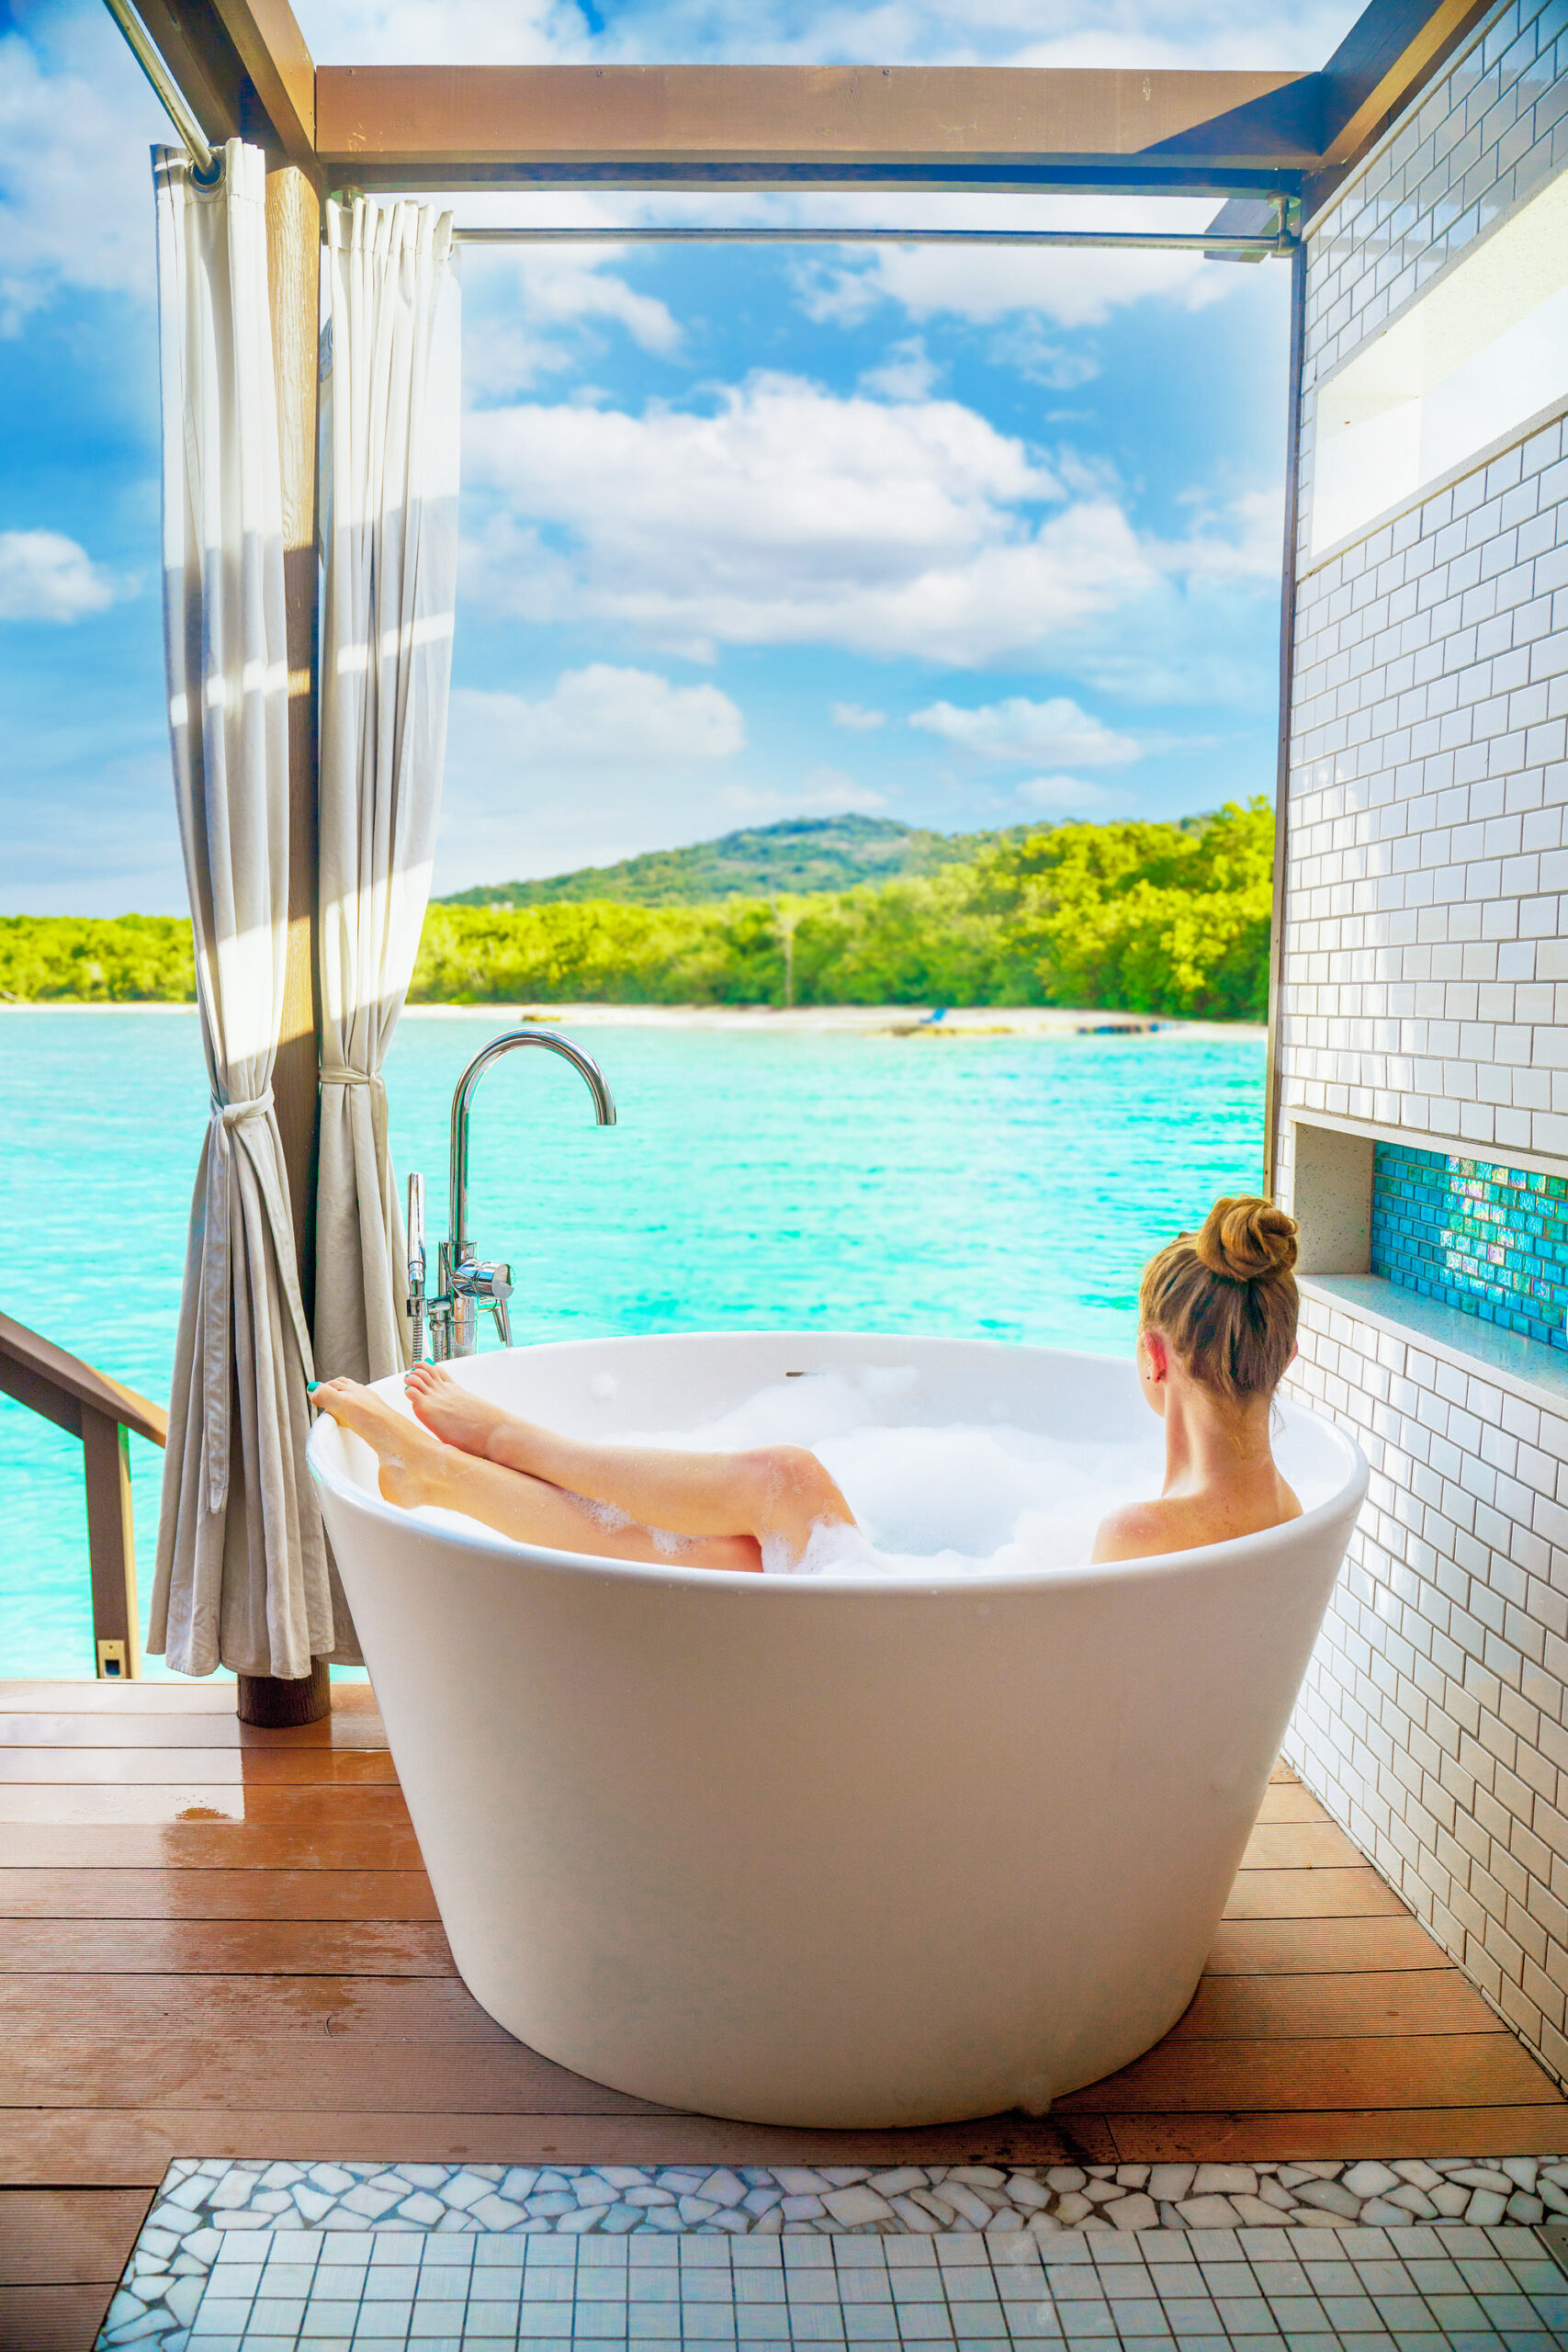 A woman sitting in an outdoor tub looking out at a view of the beach and mountains